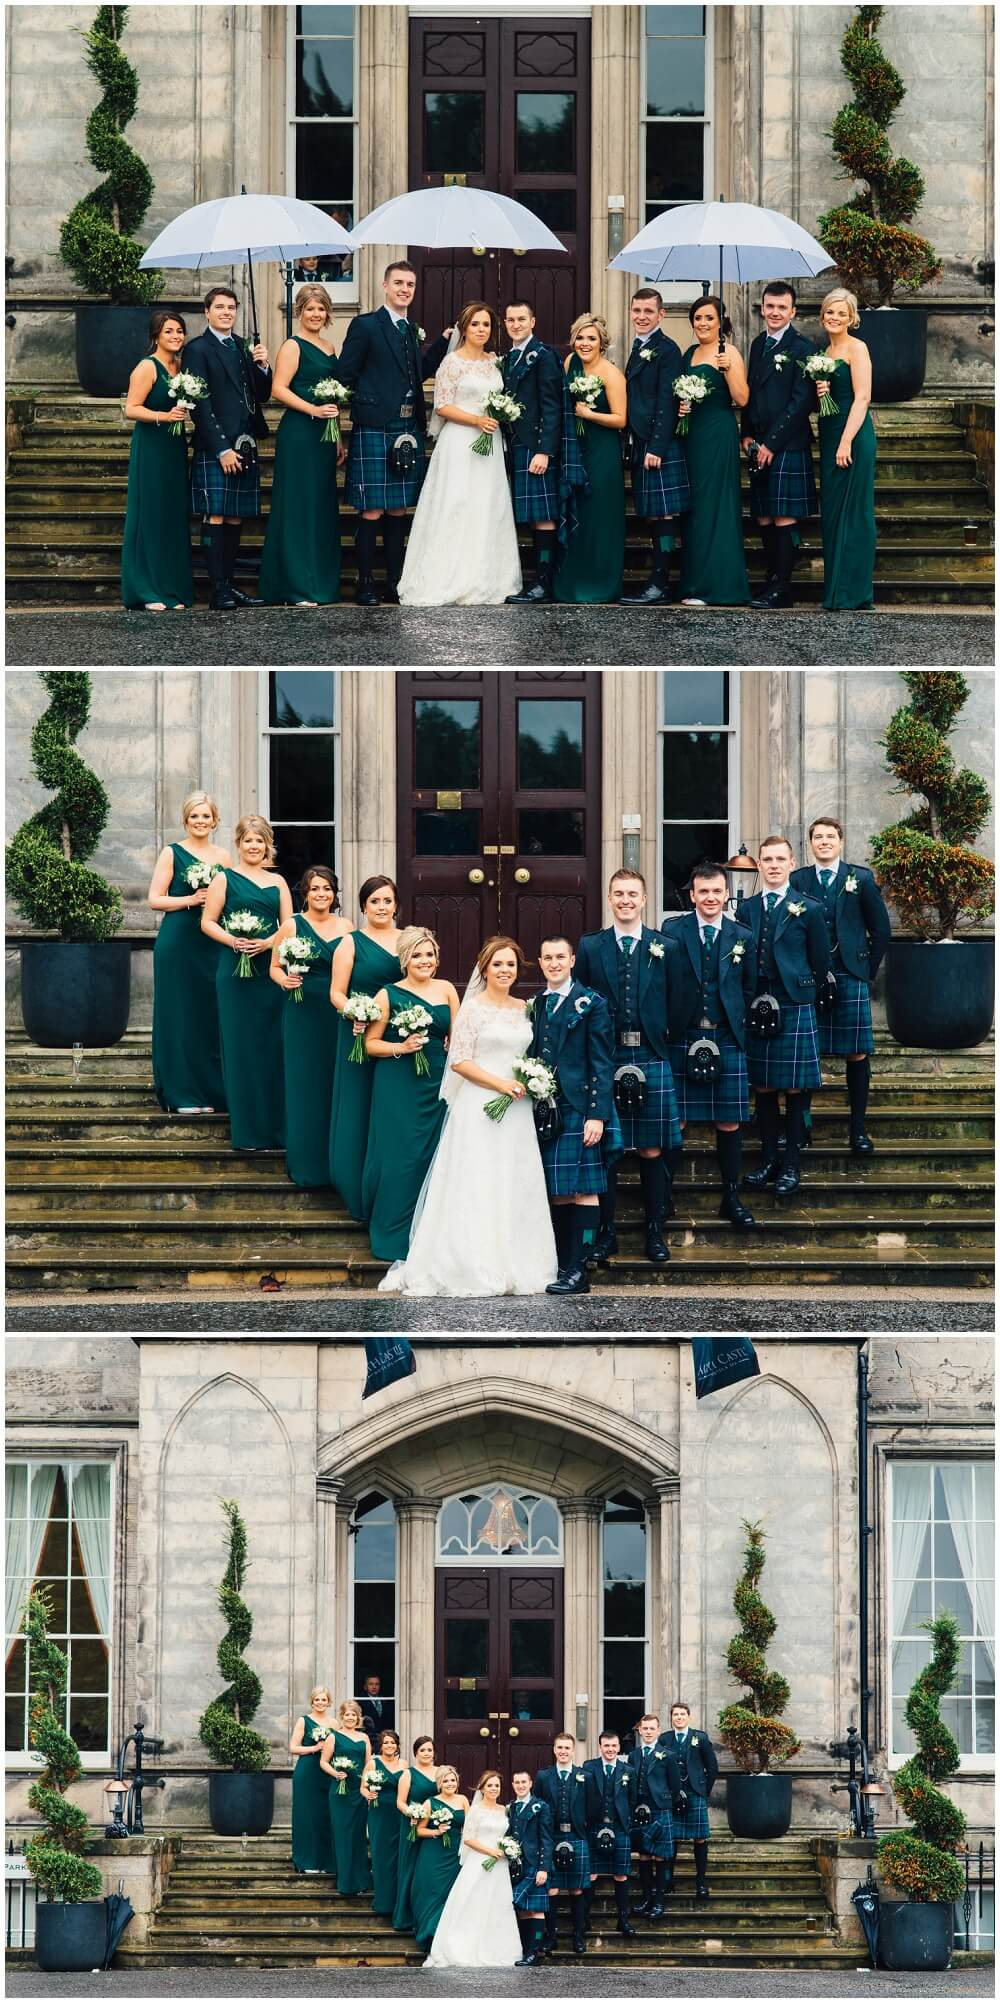 Airth Castle Wedding, photography, photographer, photos, pics, snaps, castle, kilts, scotland, shotts, mmc photography, mark mccue photography, cambuslang, falkirk, forth, fun, love, autumn